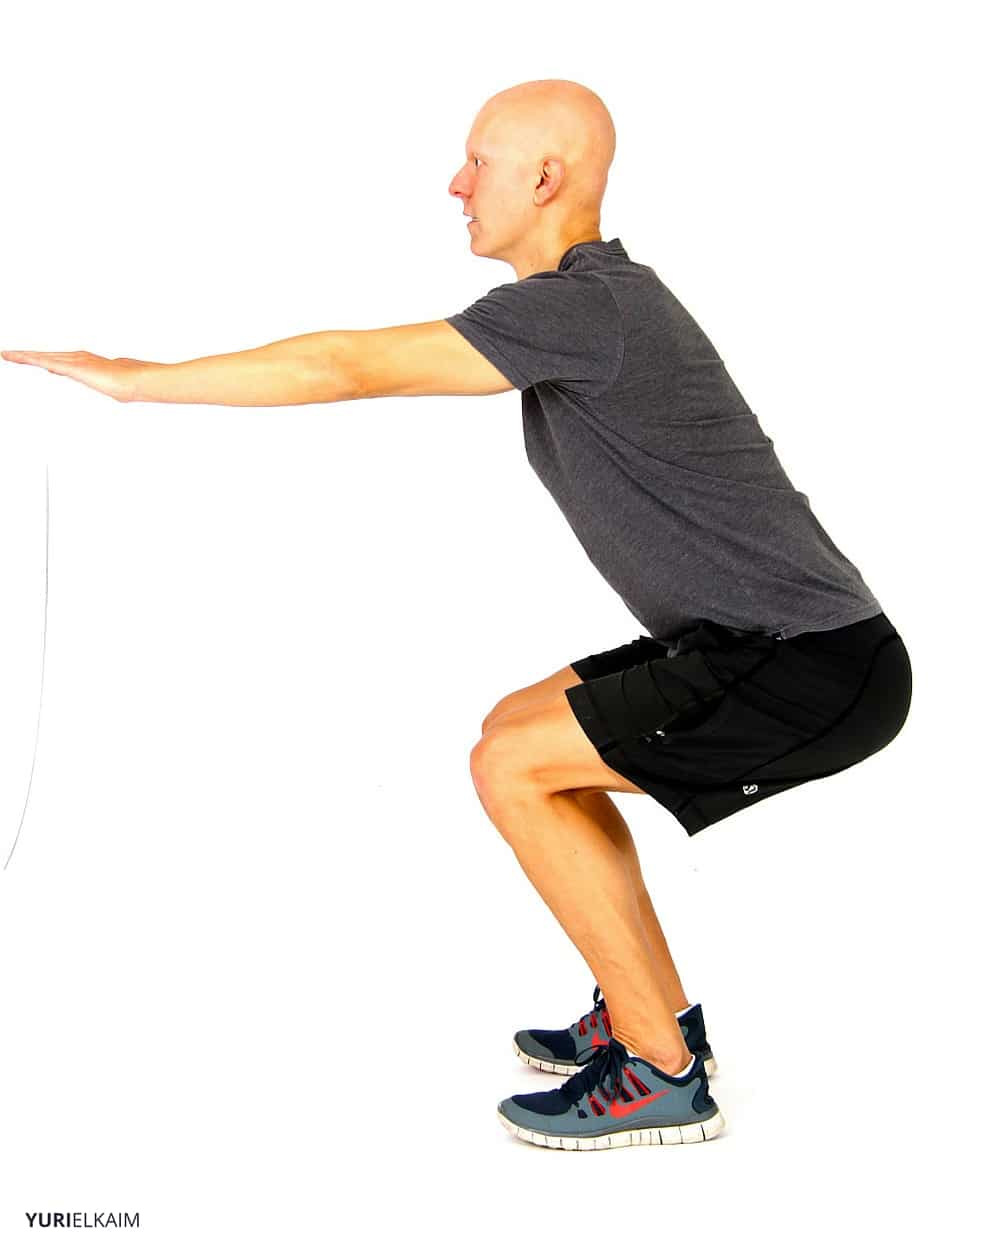 Core Strength Exercises - Squat with Extended Arms